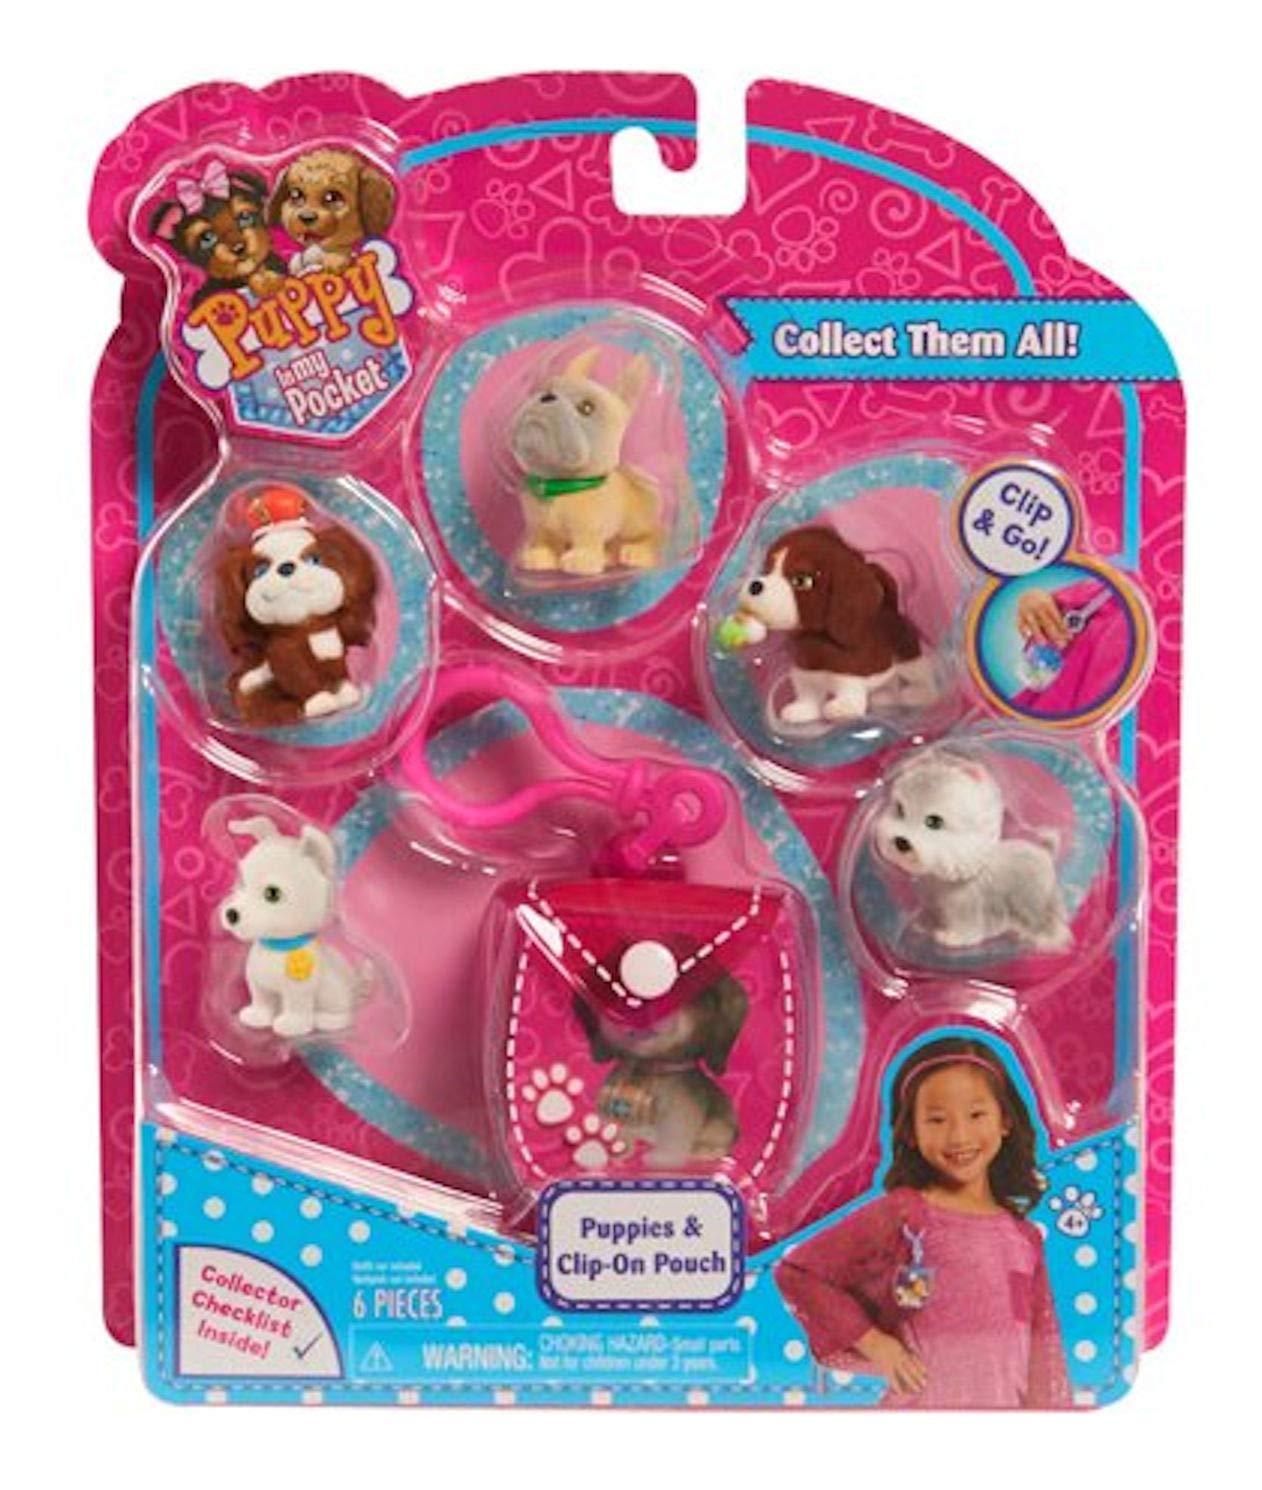 Clip-On Pouch and 5 cute puppies Just Play Toys JPL48605 6 pieces Puppy In My Pocket